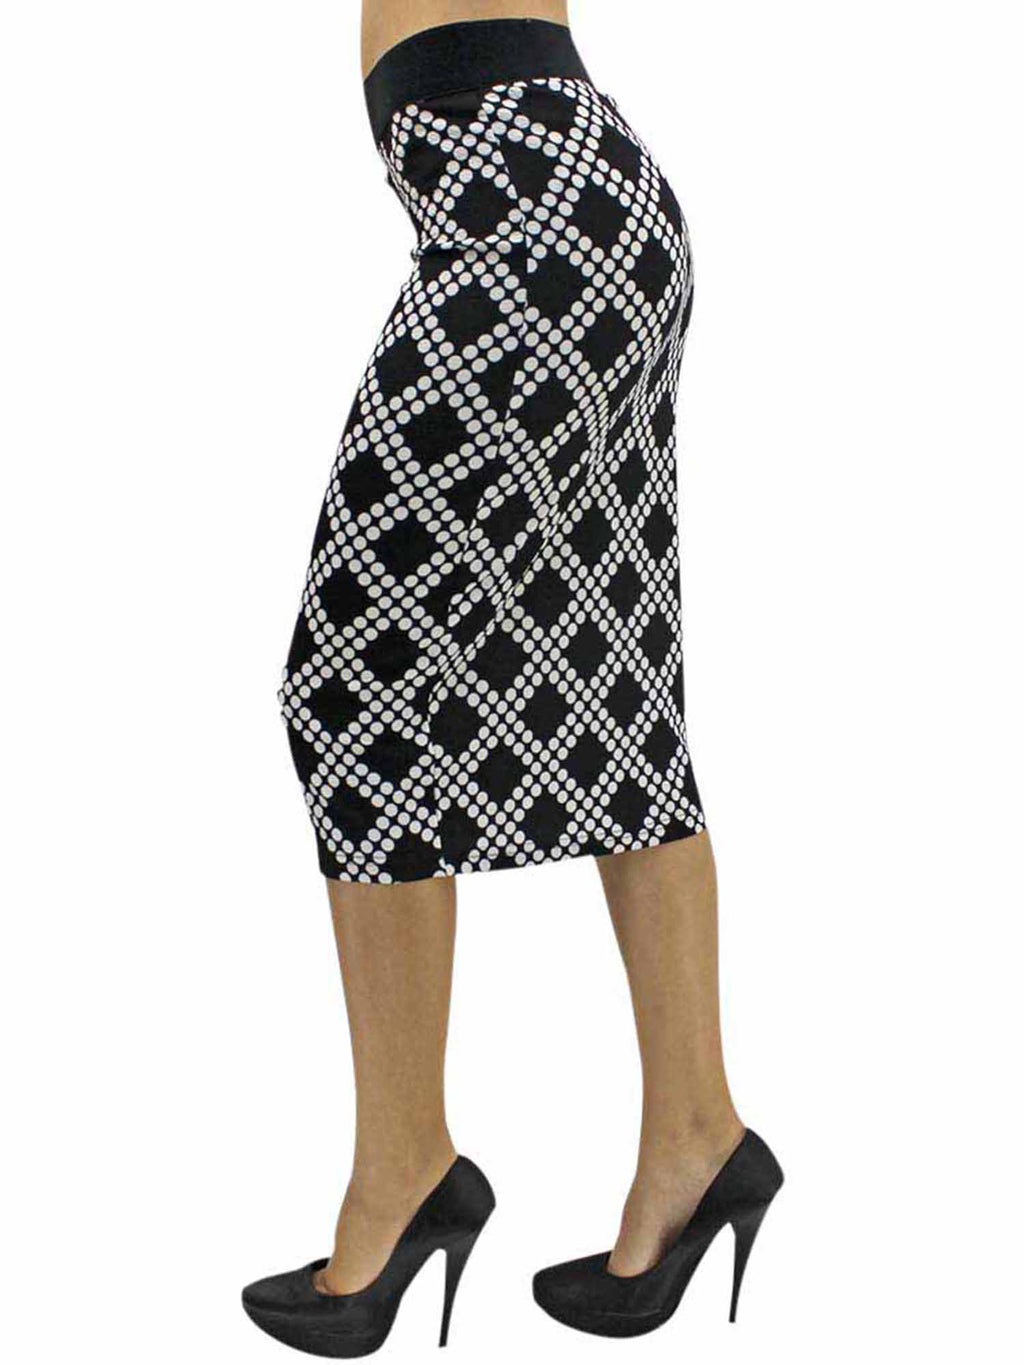 Black & White Diamond Print Pencil Skirt